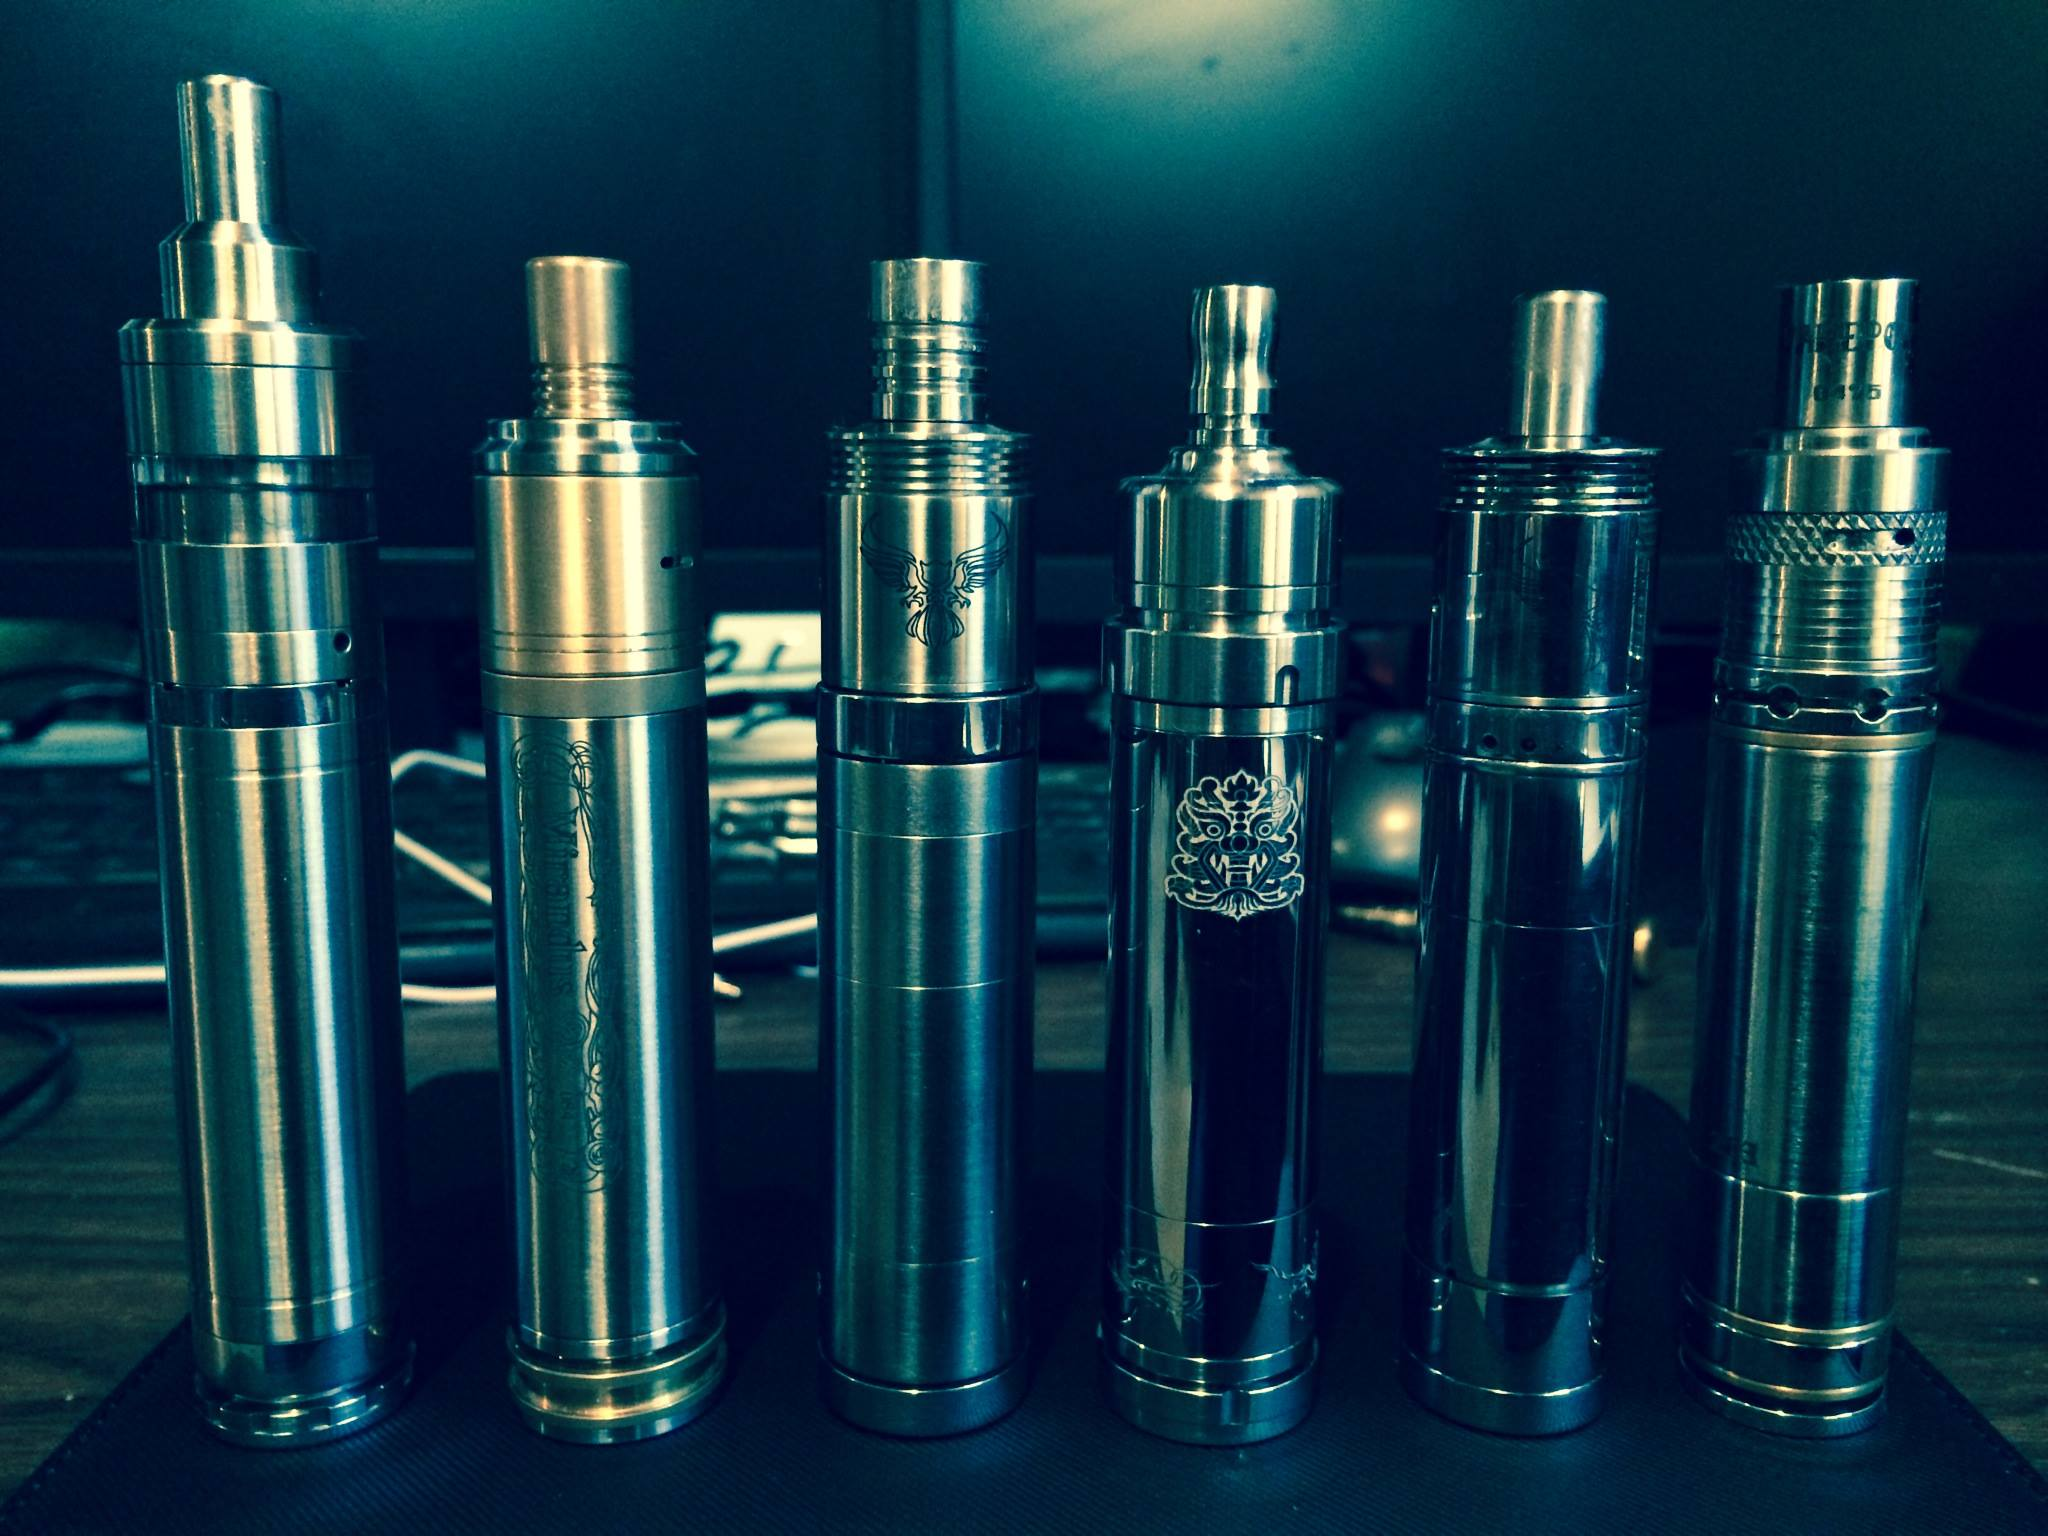 Martin Bos's vapor pipes